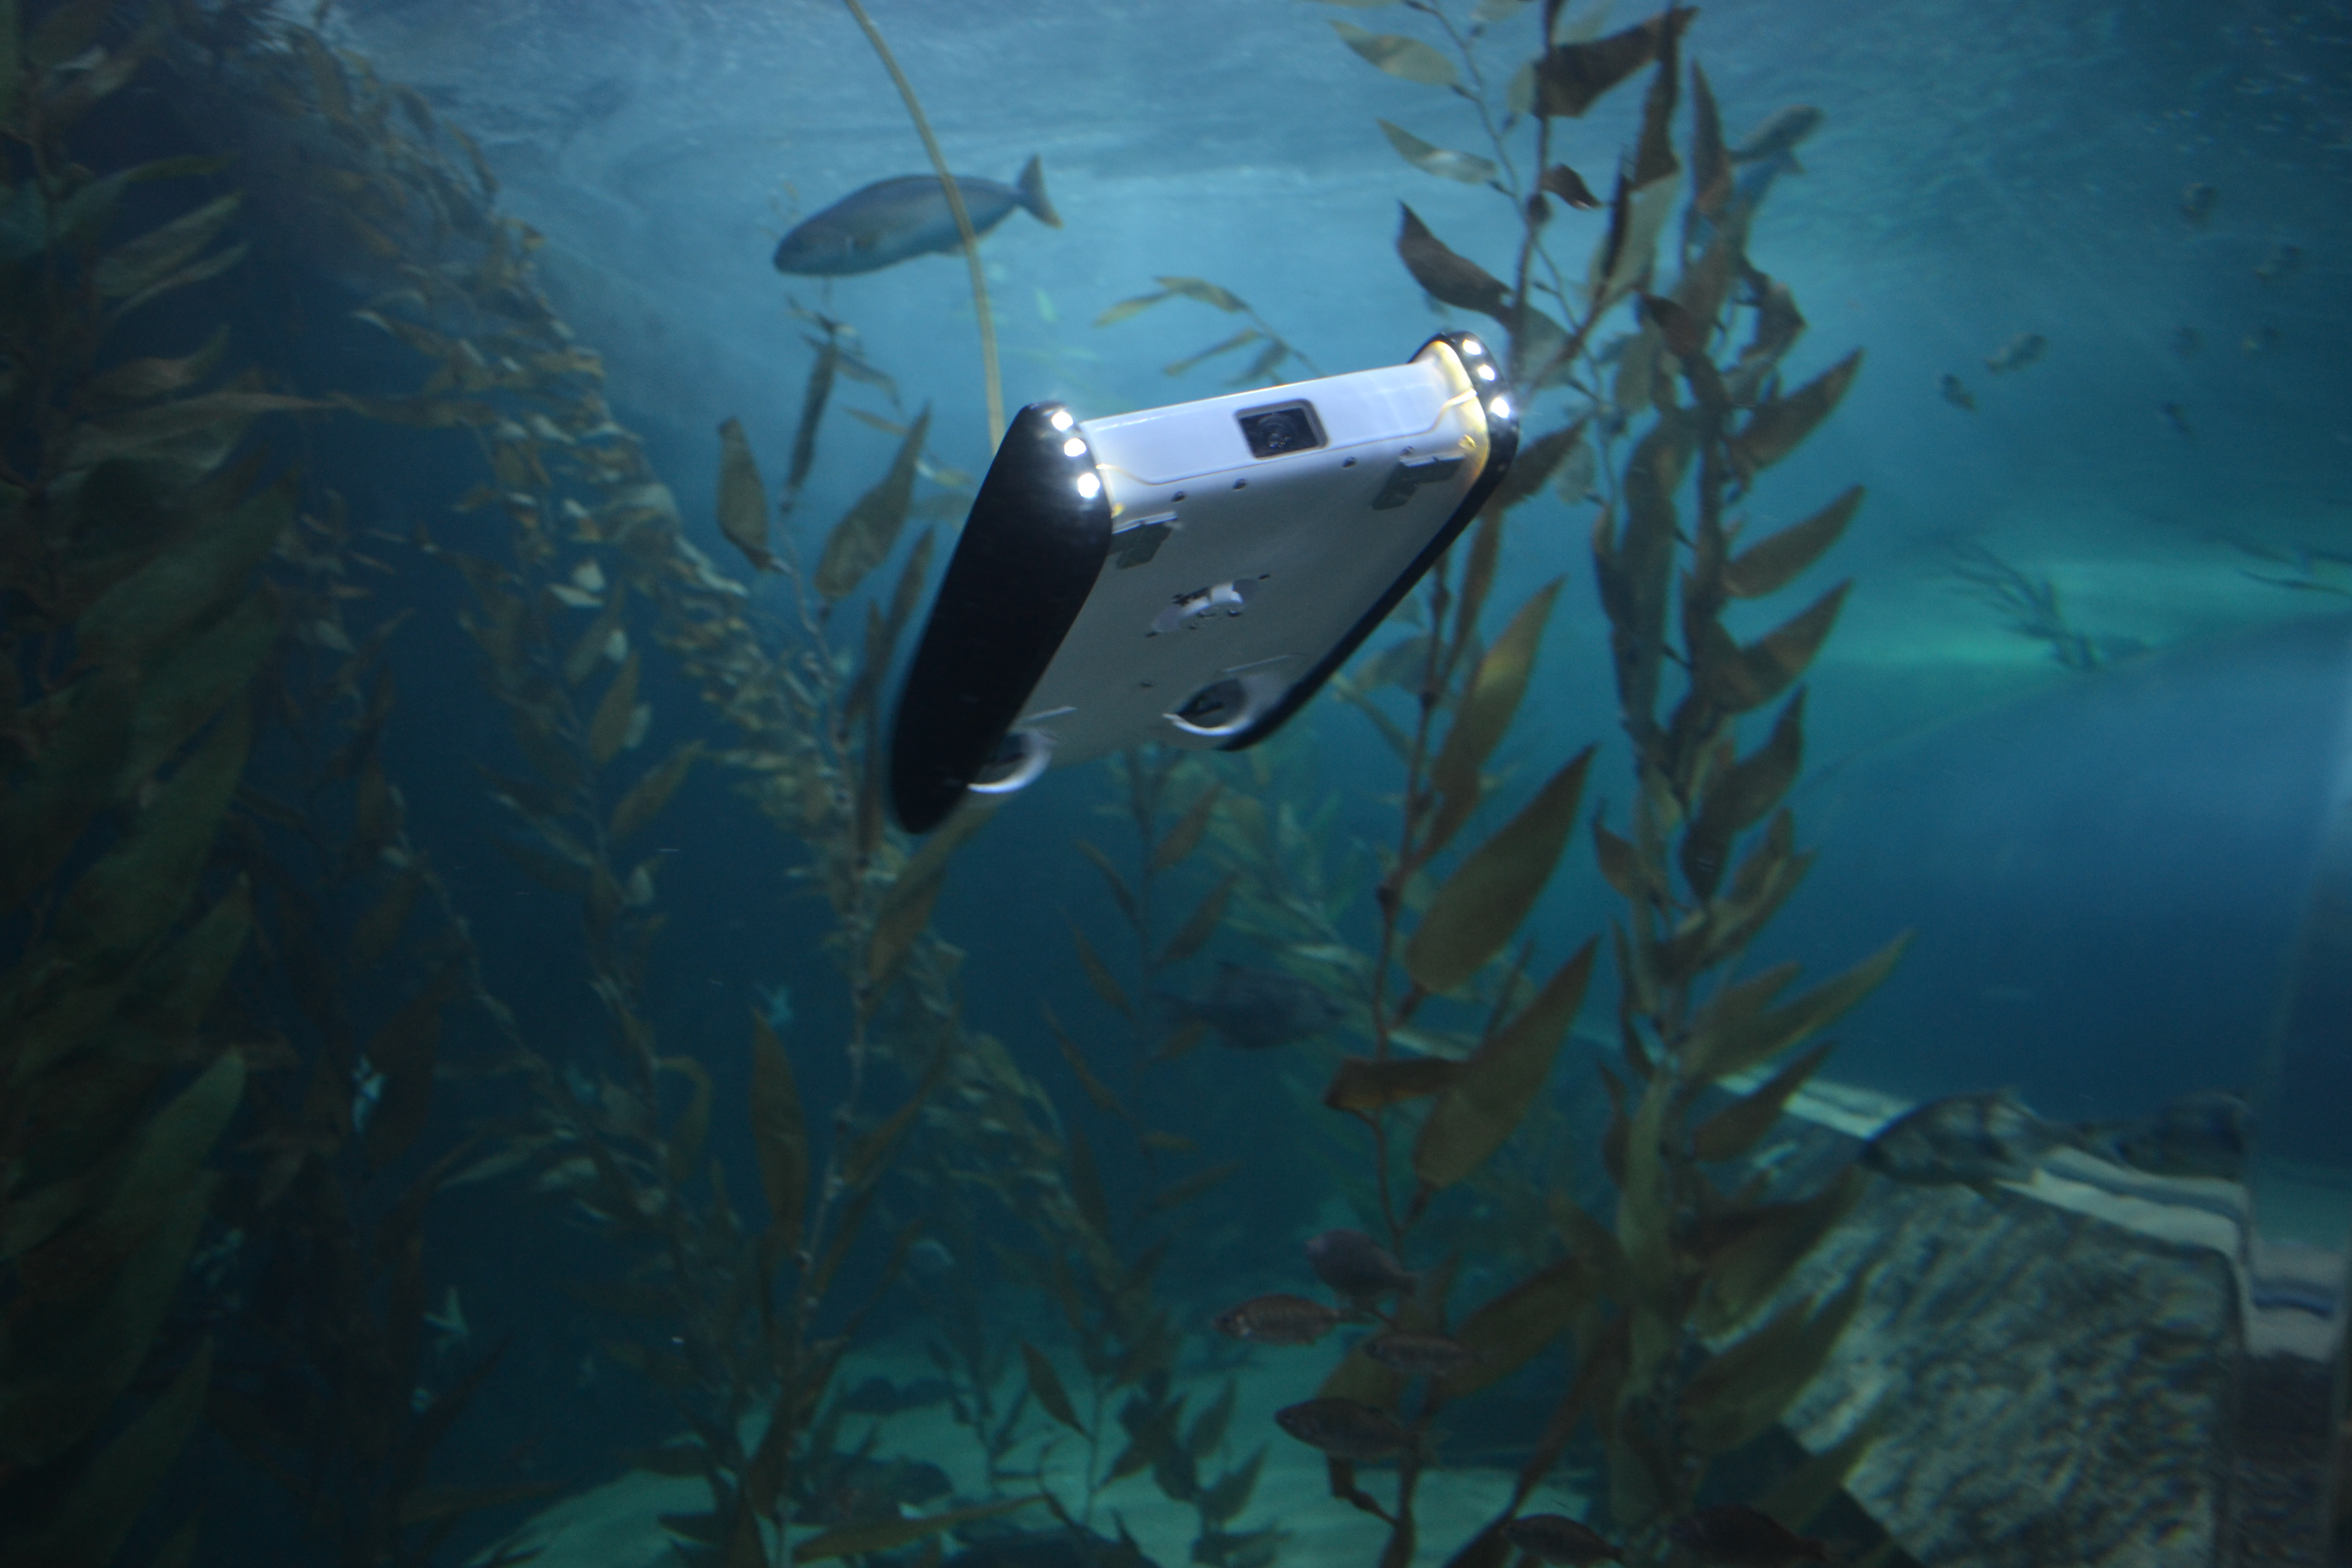 TED Fellow and 2016 National Geographic Emerging Explorer David Lang's OpenROV underwater robot. Photo: Courtesy of David Lang